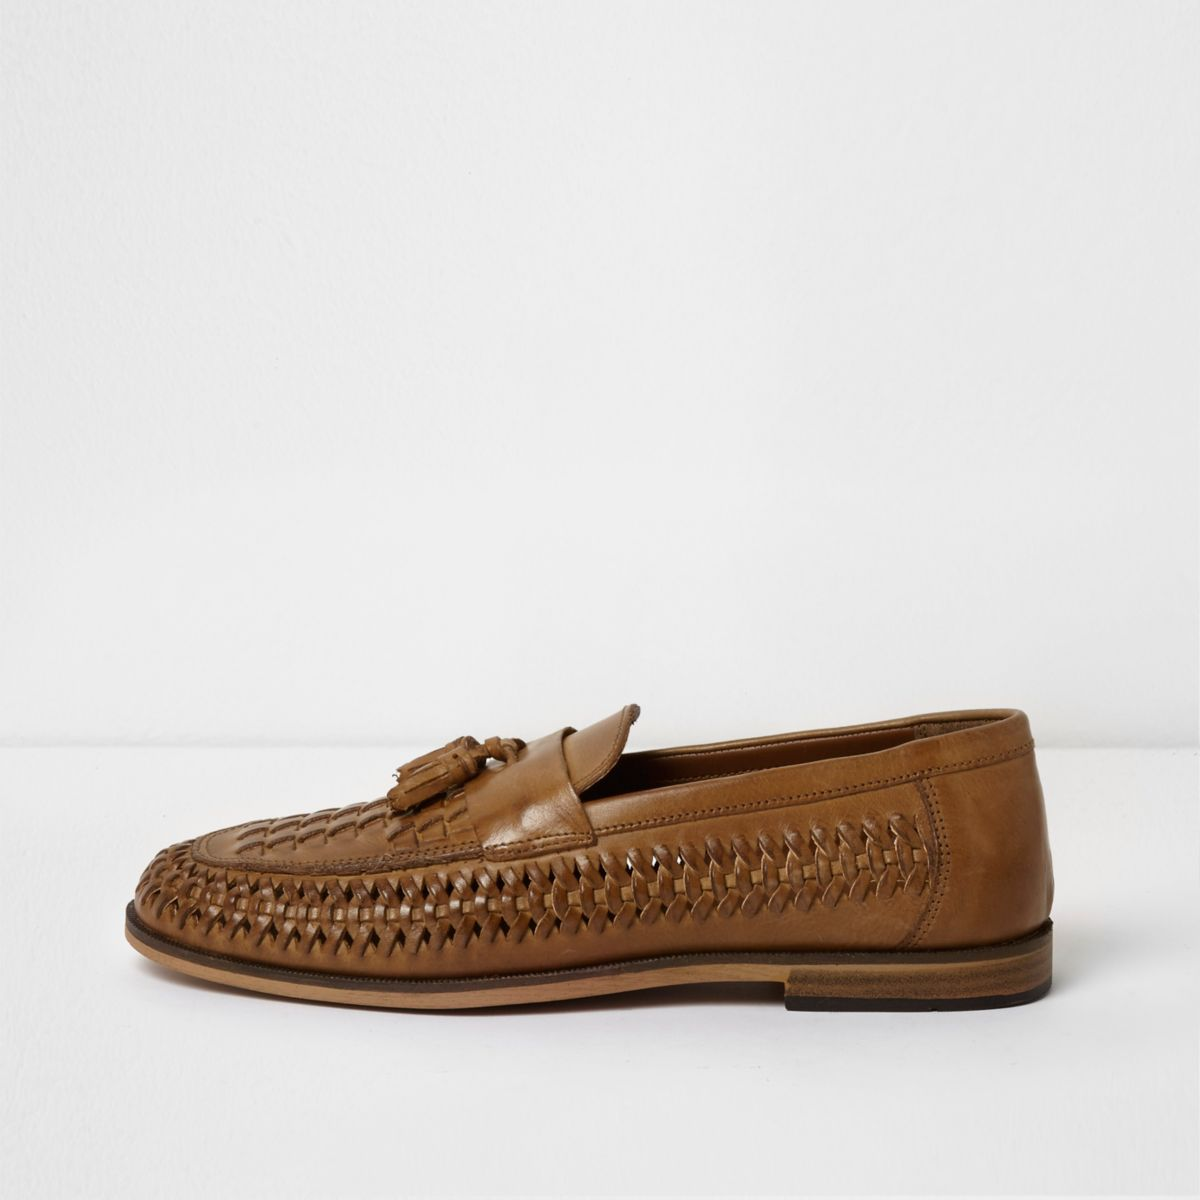 Tan polished leather woven tassel loafers